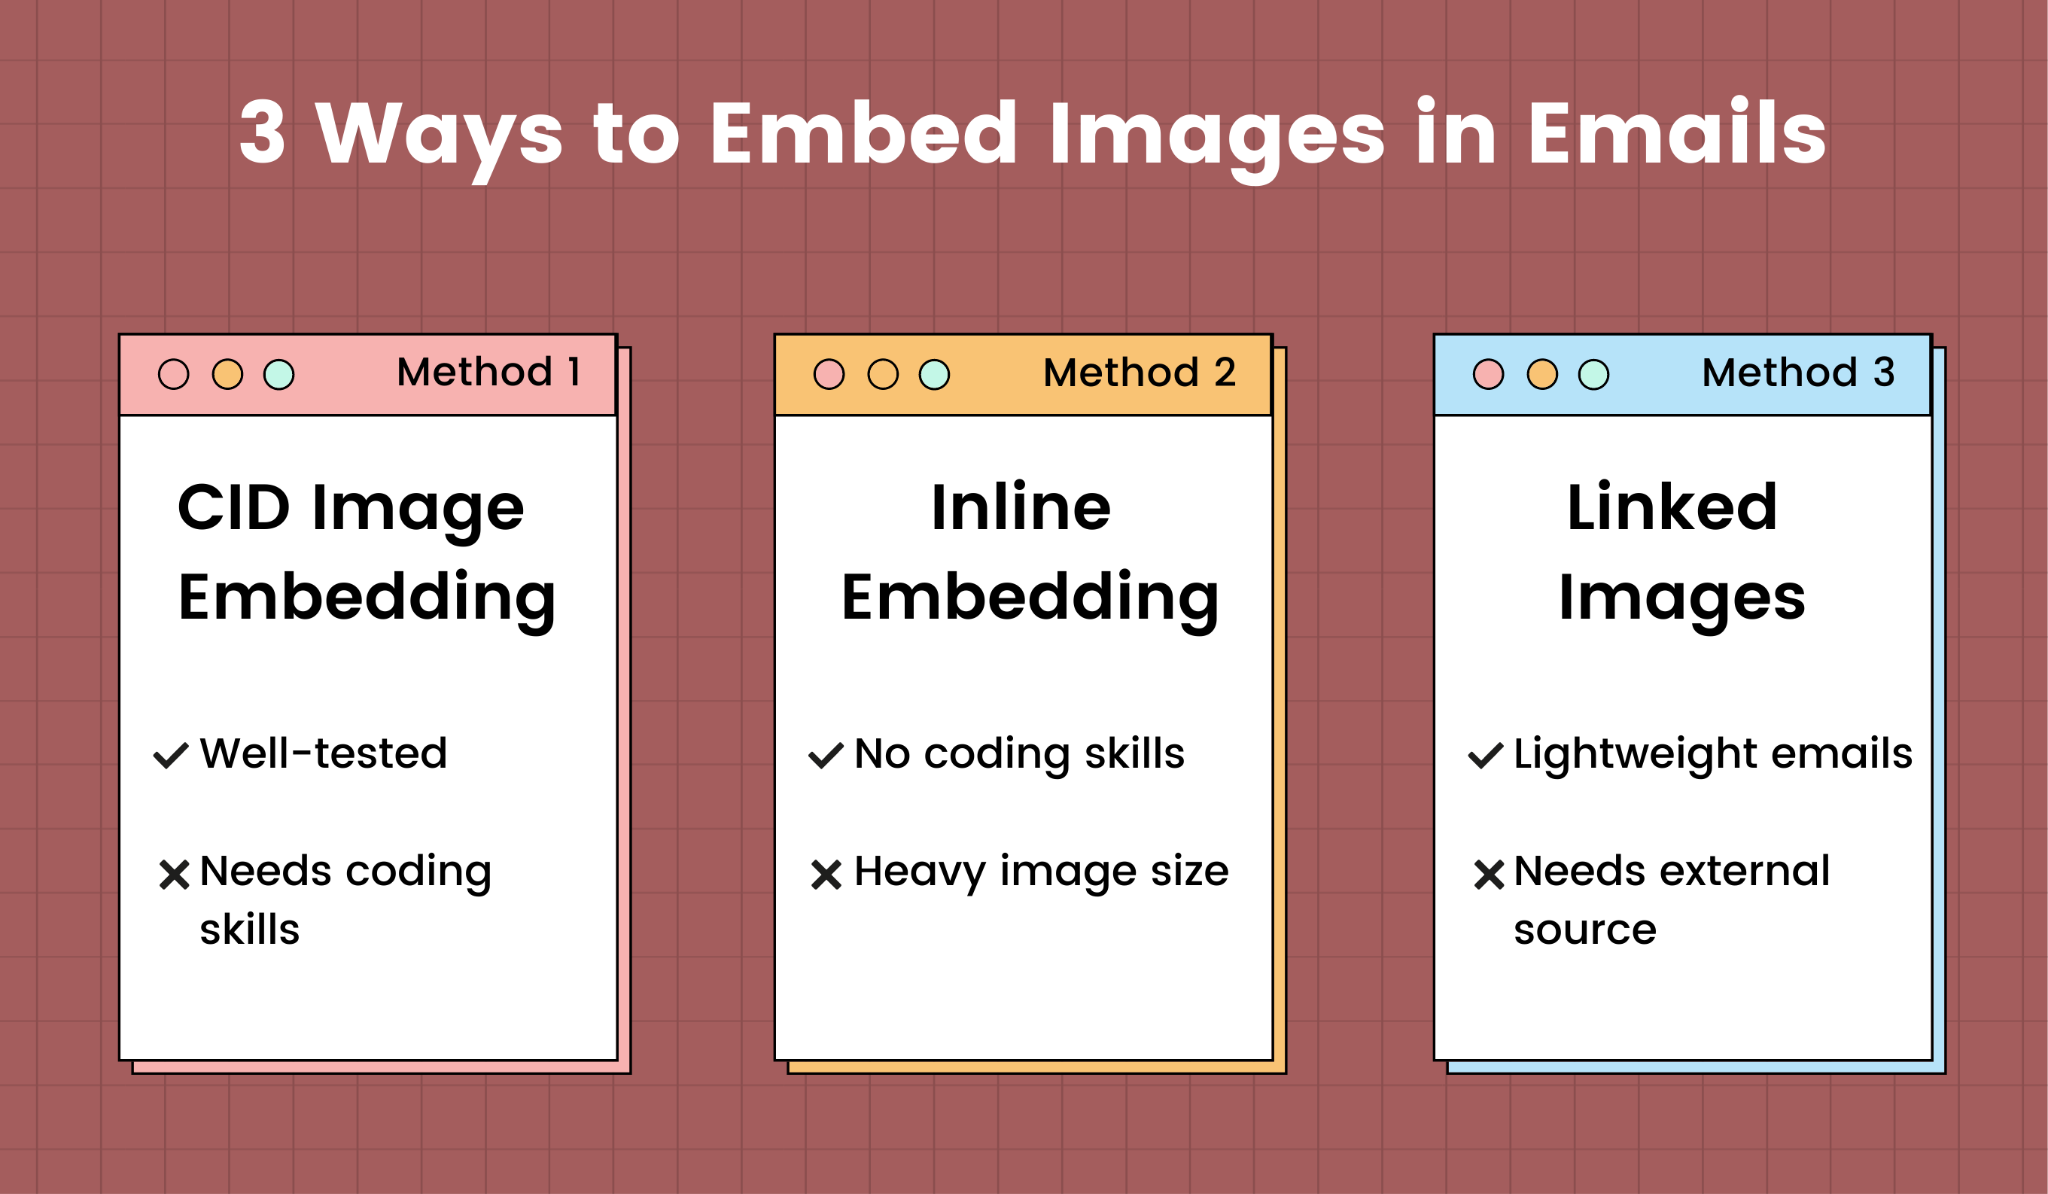 3 methods to embed images in emails